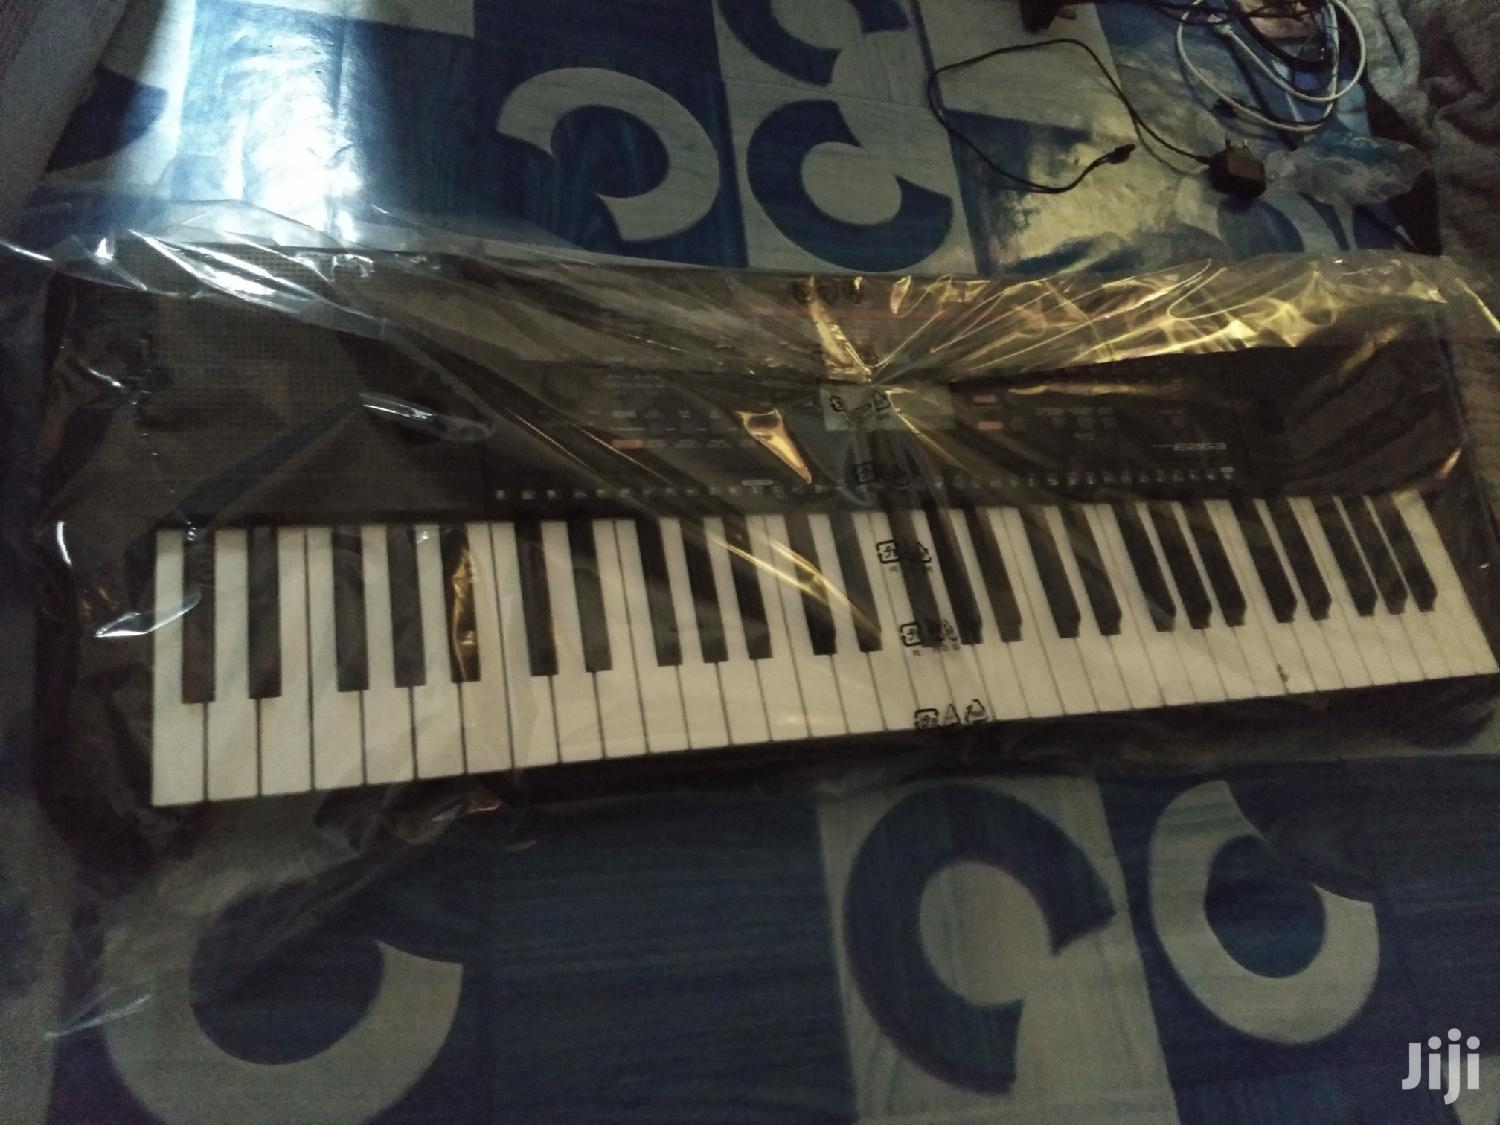 Yamaha PSR-E263 Keyboard | Musical Instruments & Gear for sale in Ga West Municipal, Greater Accra, Ghana